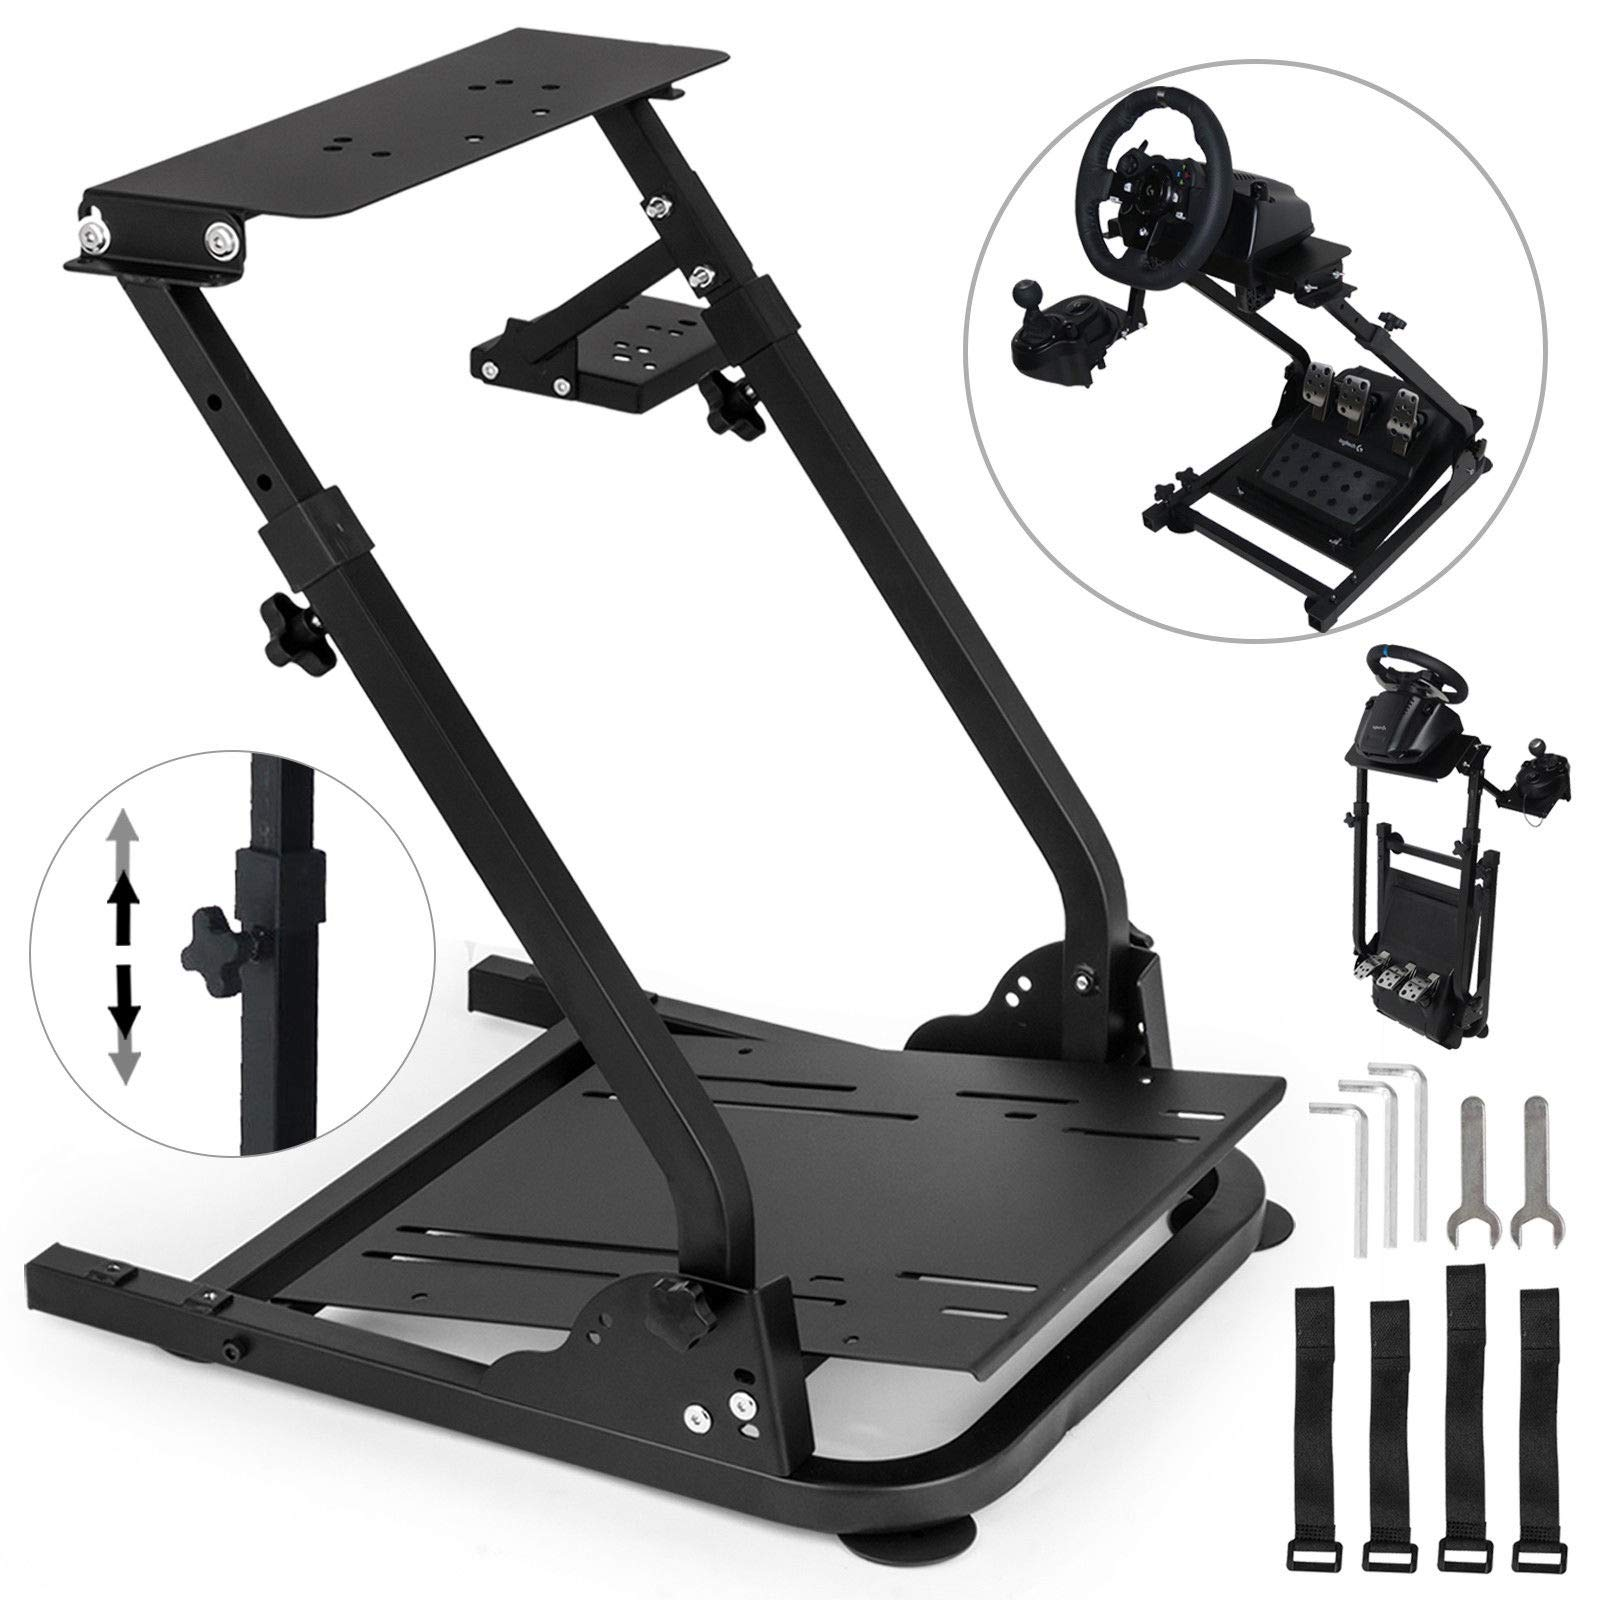 VEVOR G920 Racing Steering Wheel Stand Pro Shifter Mount Logitech G27/G25, G29 Gaming Wheel Stand Thrustmaster,Wheel Pedals NOT Included Racing Wheel Stand by VEVOR